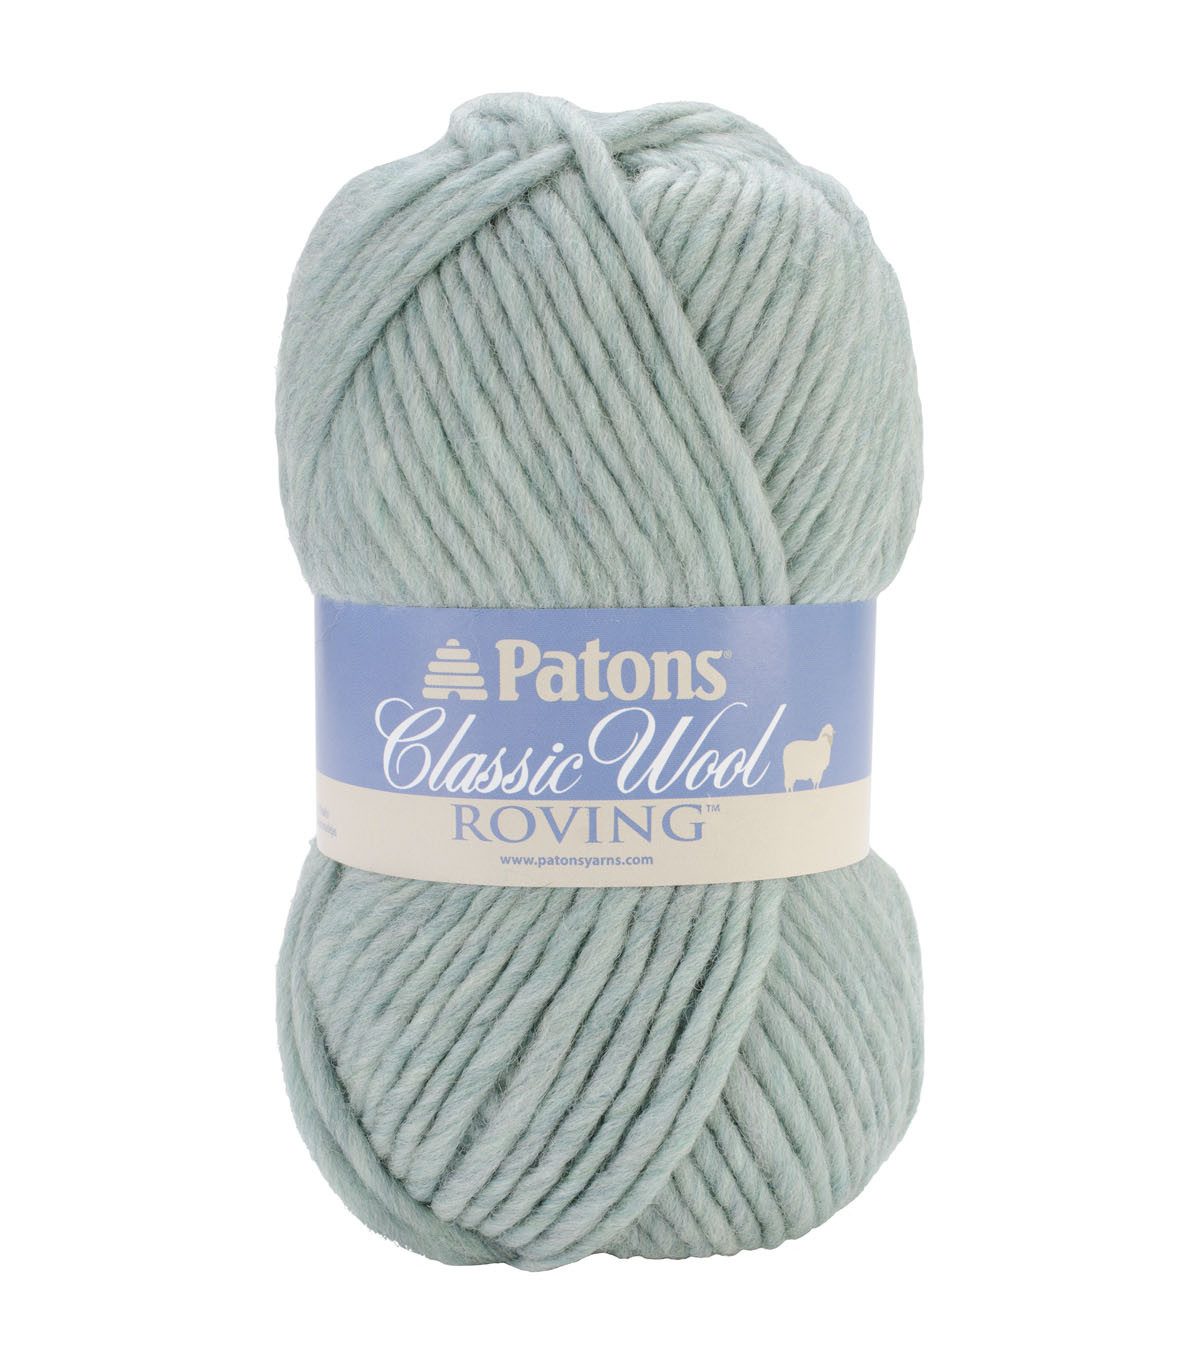 New Patons Classic Wool Roving Yarn at Joann Wool Roving Yarn Of Awesome 40 Pictures Wool Roving Yarn